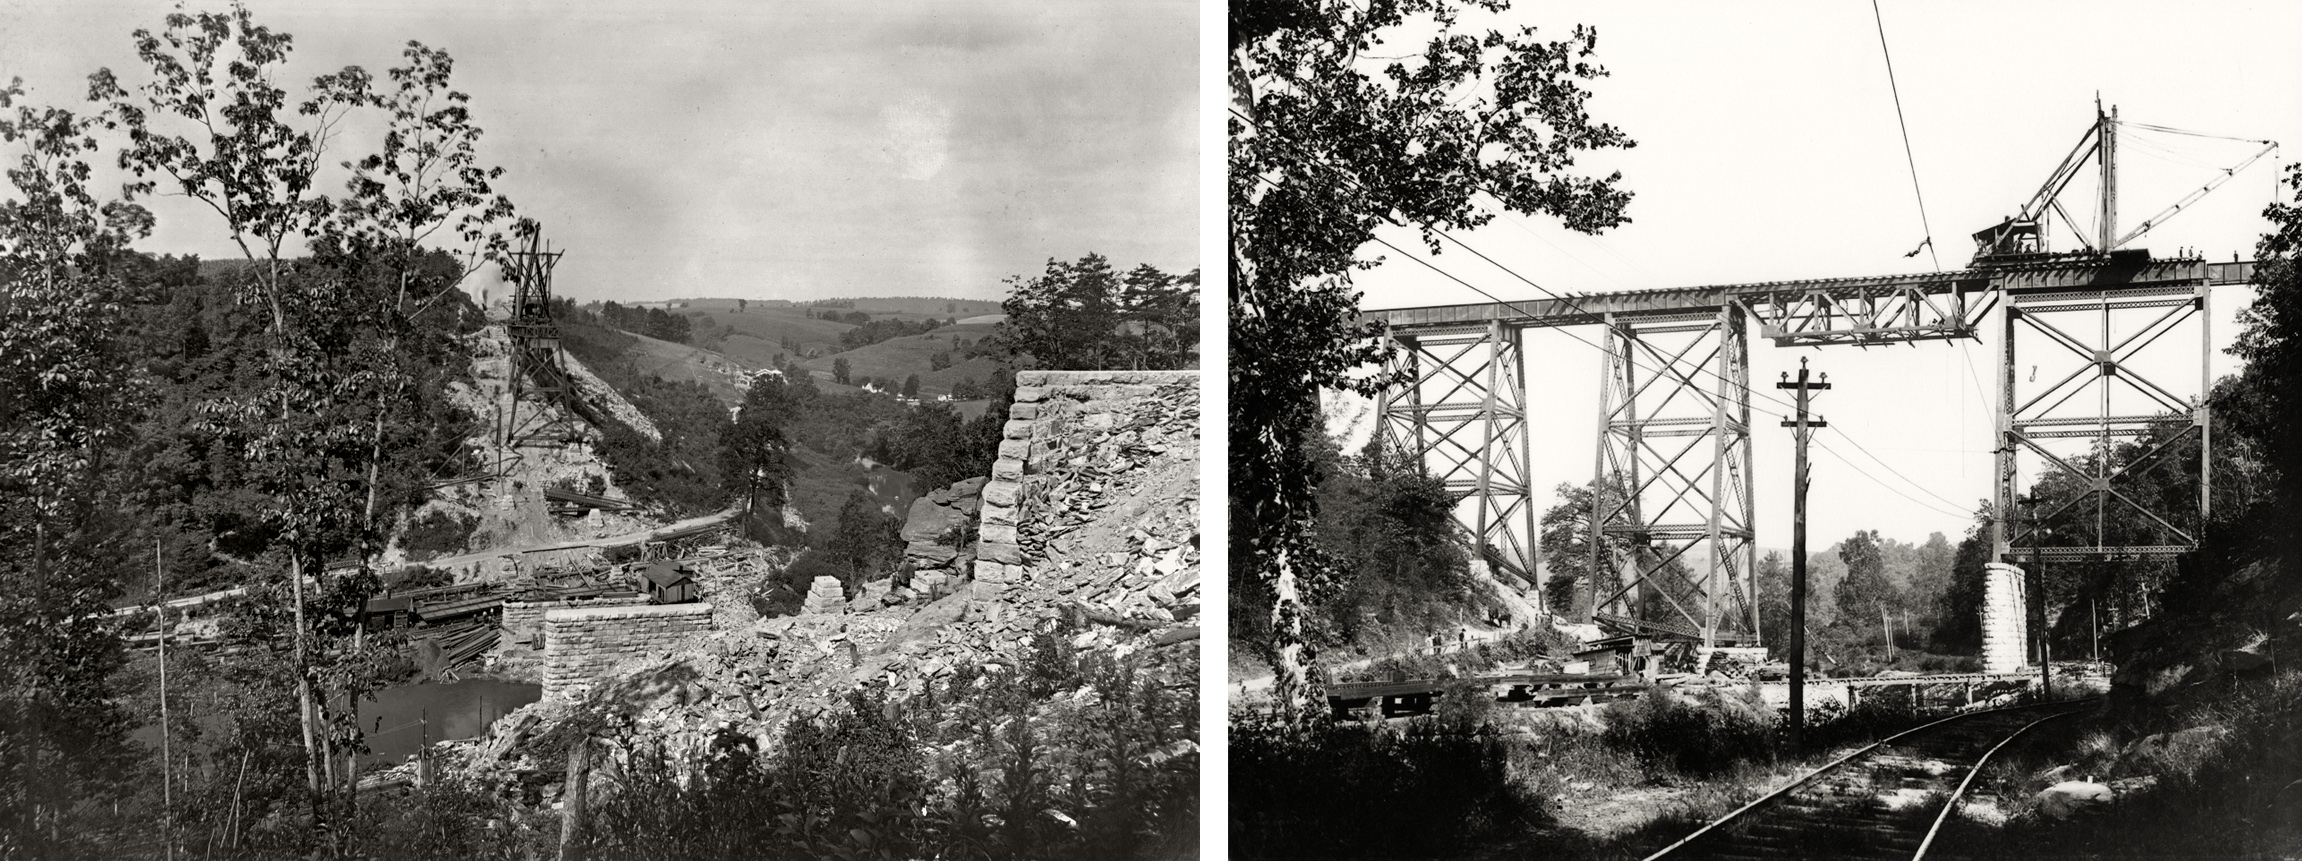 Construction of the Martic Forge Bridge was completed in 1905. These remarkable photographs illustrate the challenge the PRR had constructing this bridge in the remote Pequea Valley. (L) Image collection of The Kline Collection, Railroad Museum of Pennsylvania, PHMC (R) Columbia Historic Preservation Society, Columbia, PA